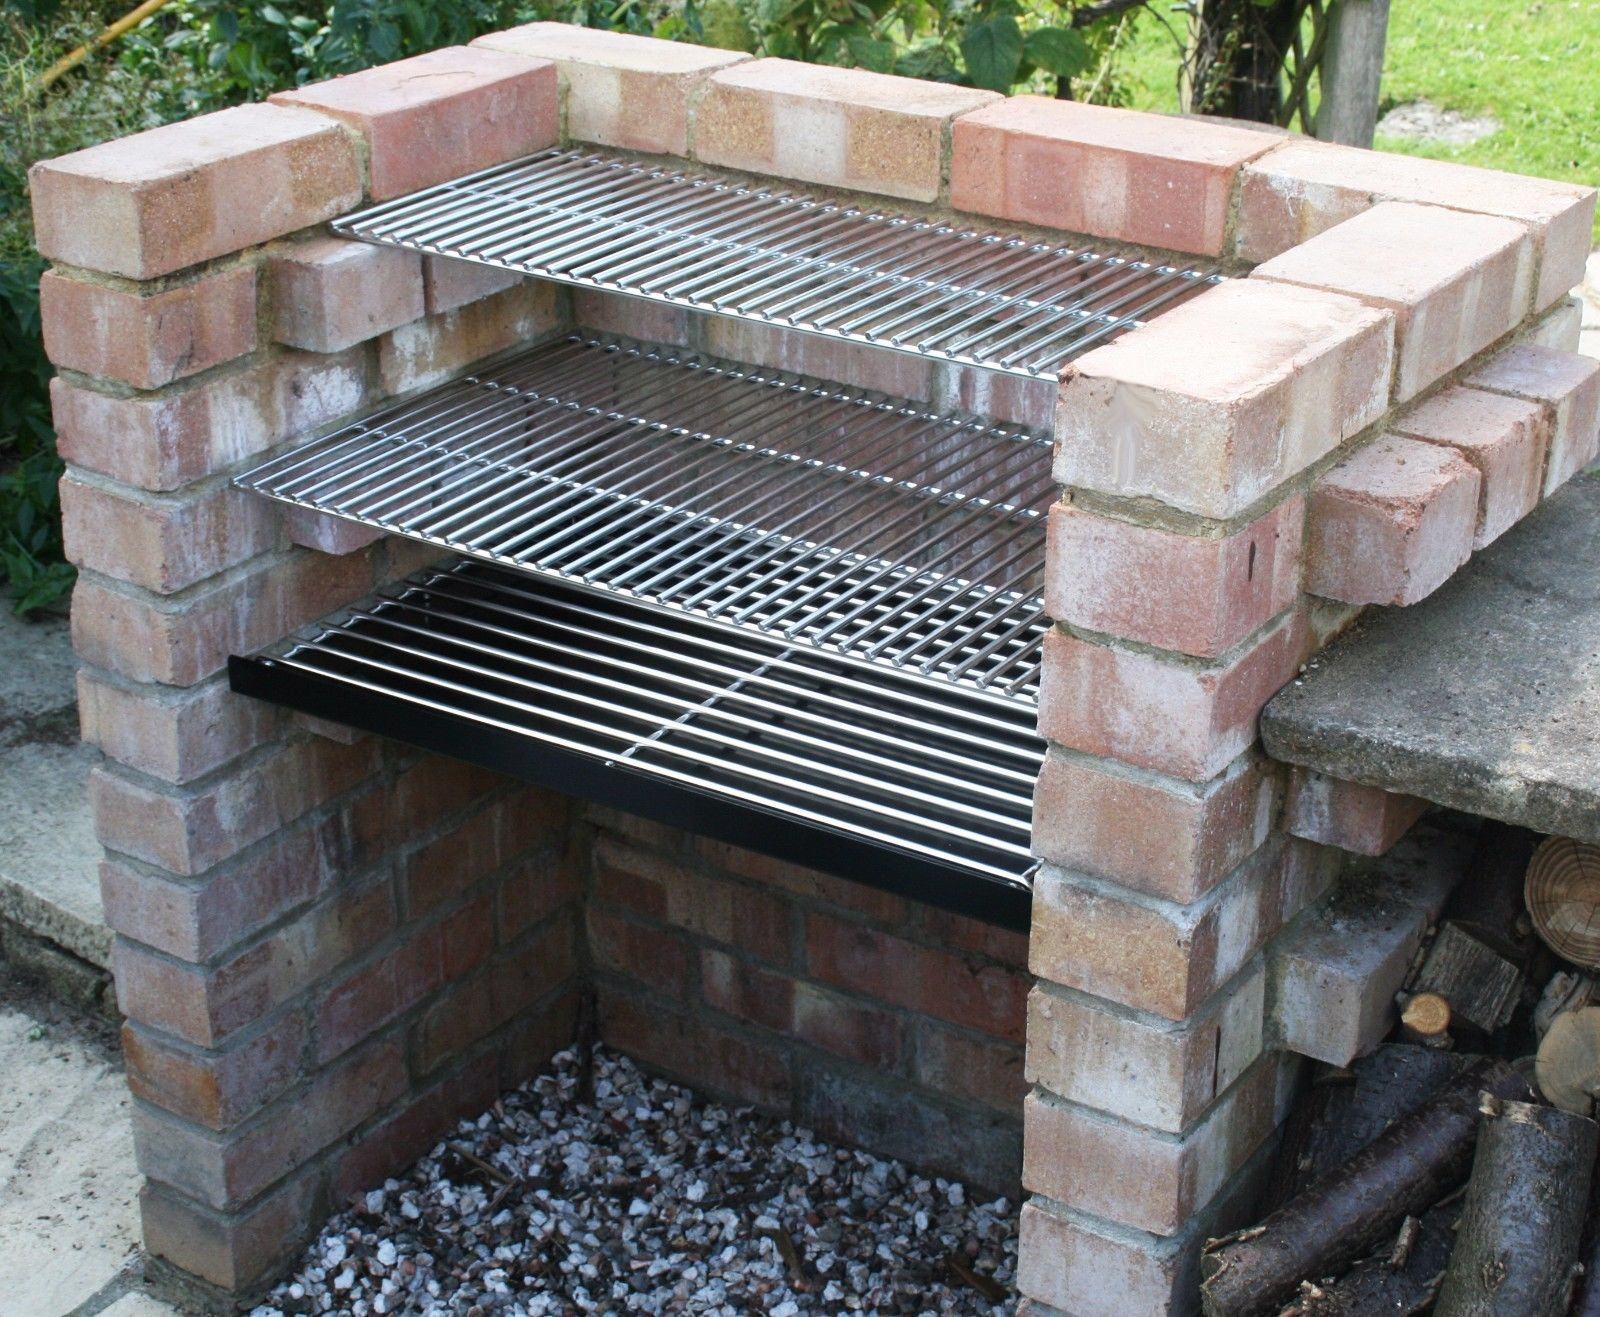 How to make a brick grill with your own hands. Brick barbecues and barbecue to give their own hands 37